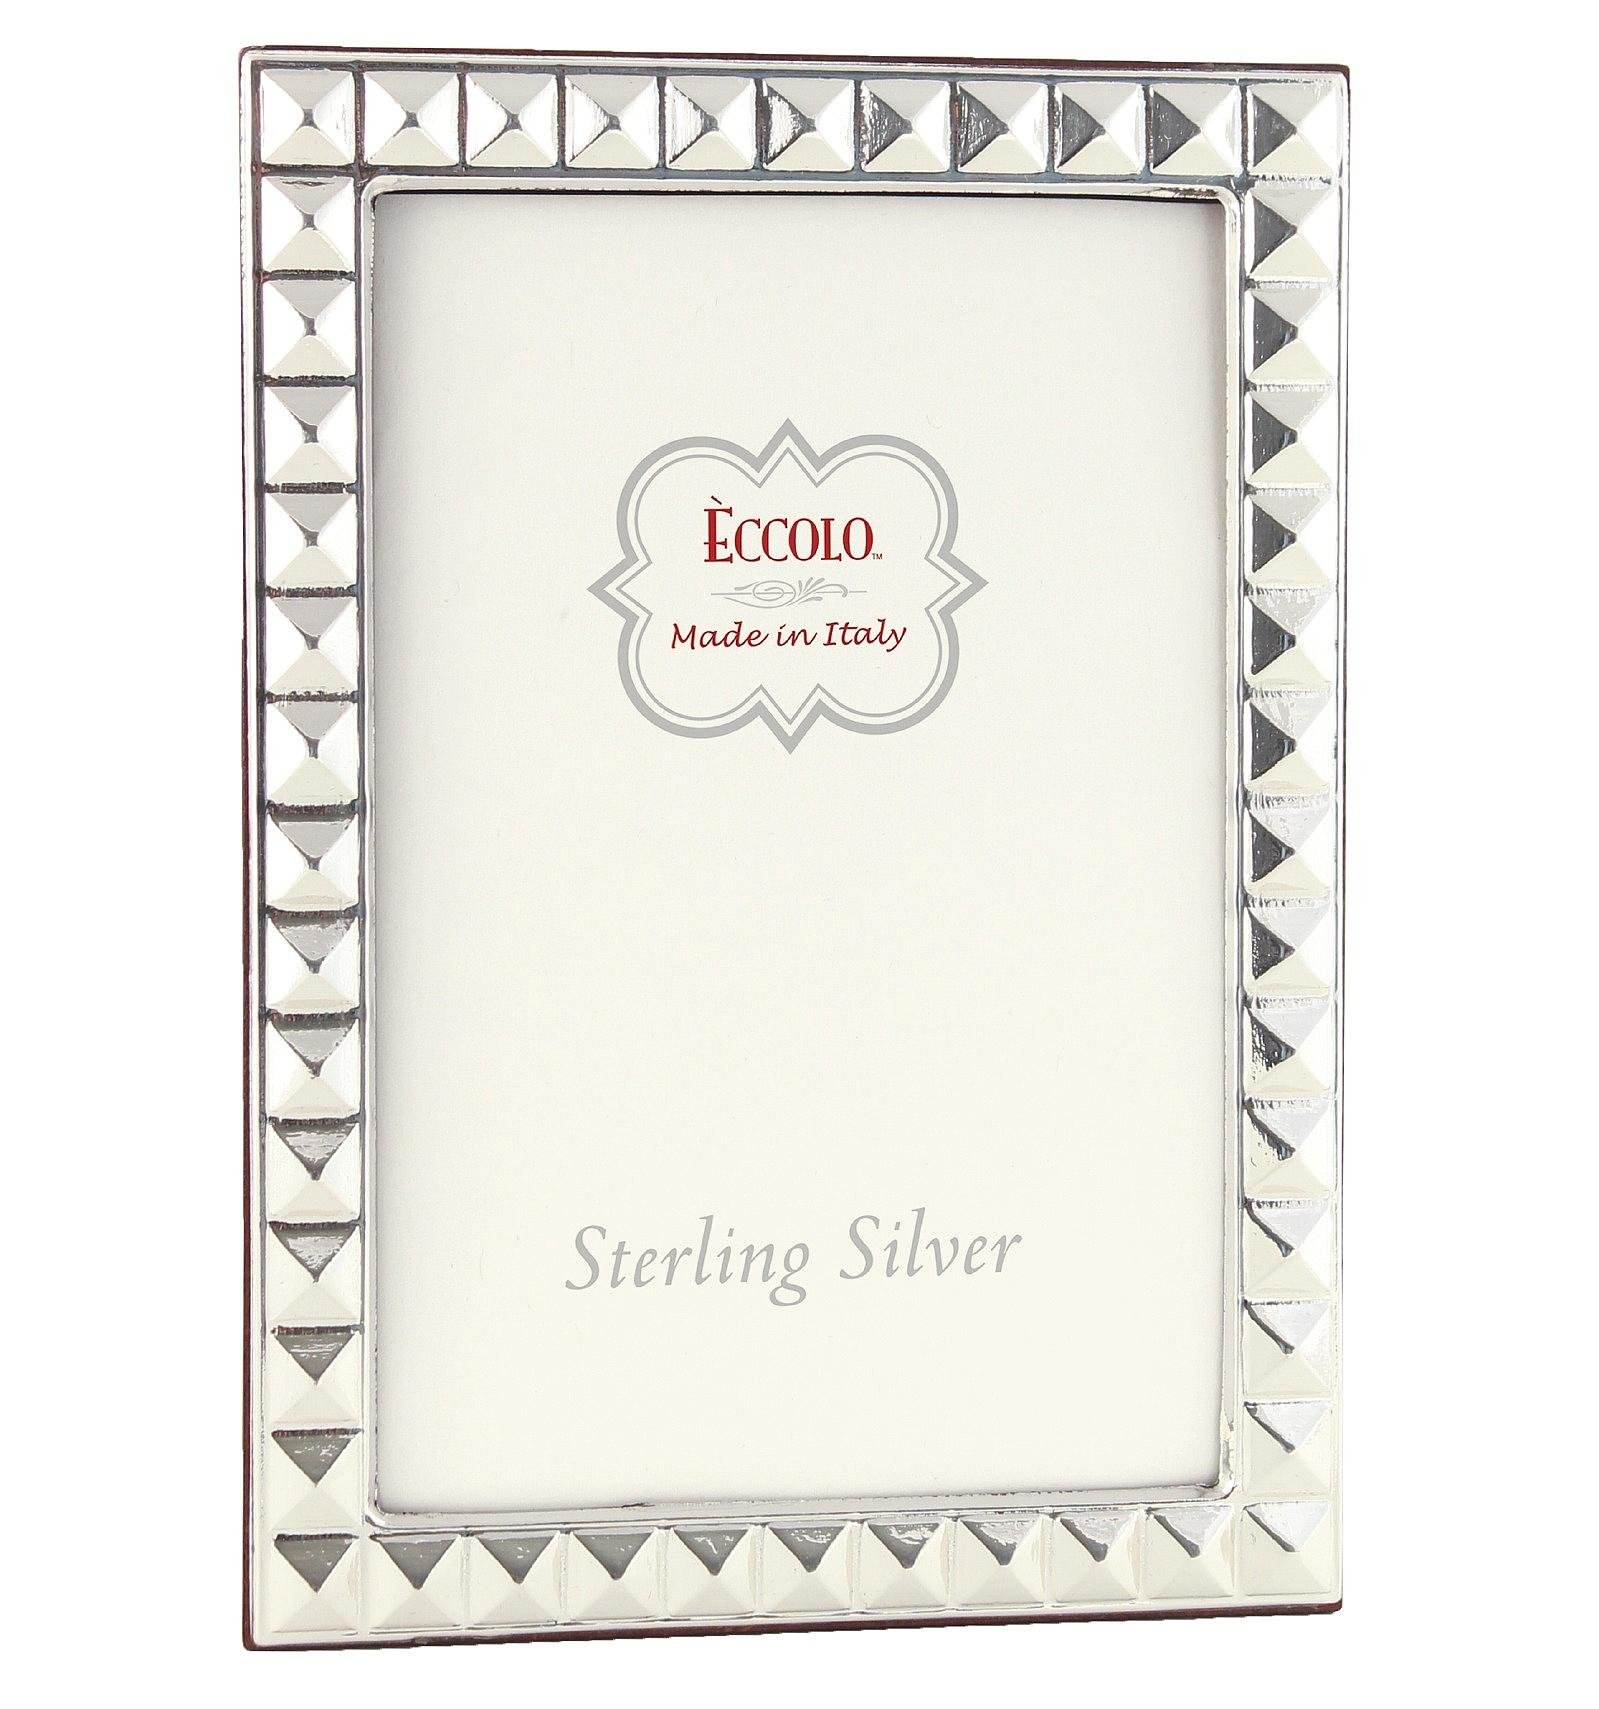 Eccolo Sterling Silver Frame, Holds 5 by 7-Inch Photo, Pyramid